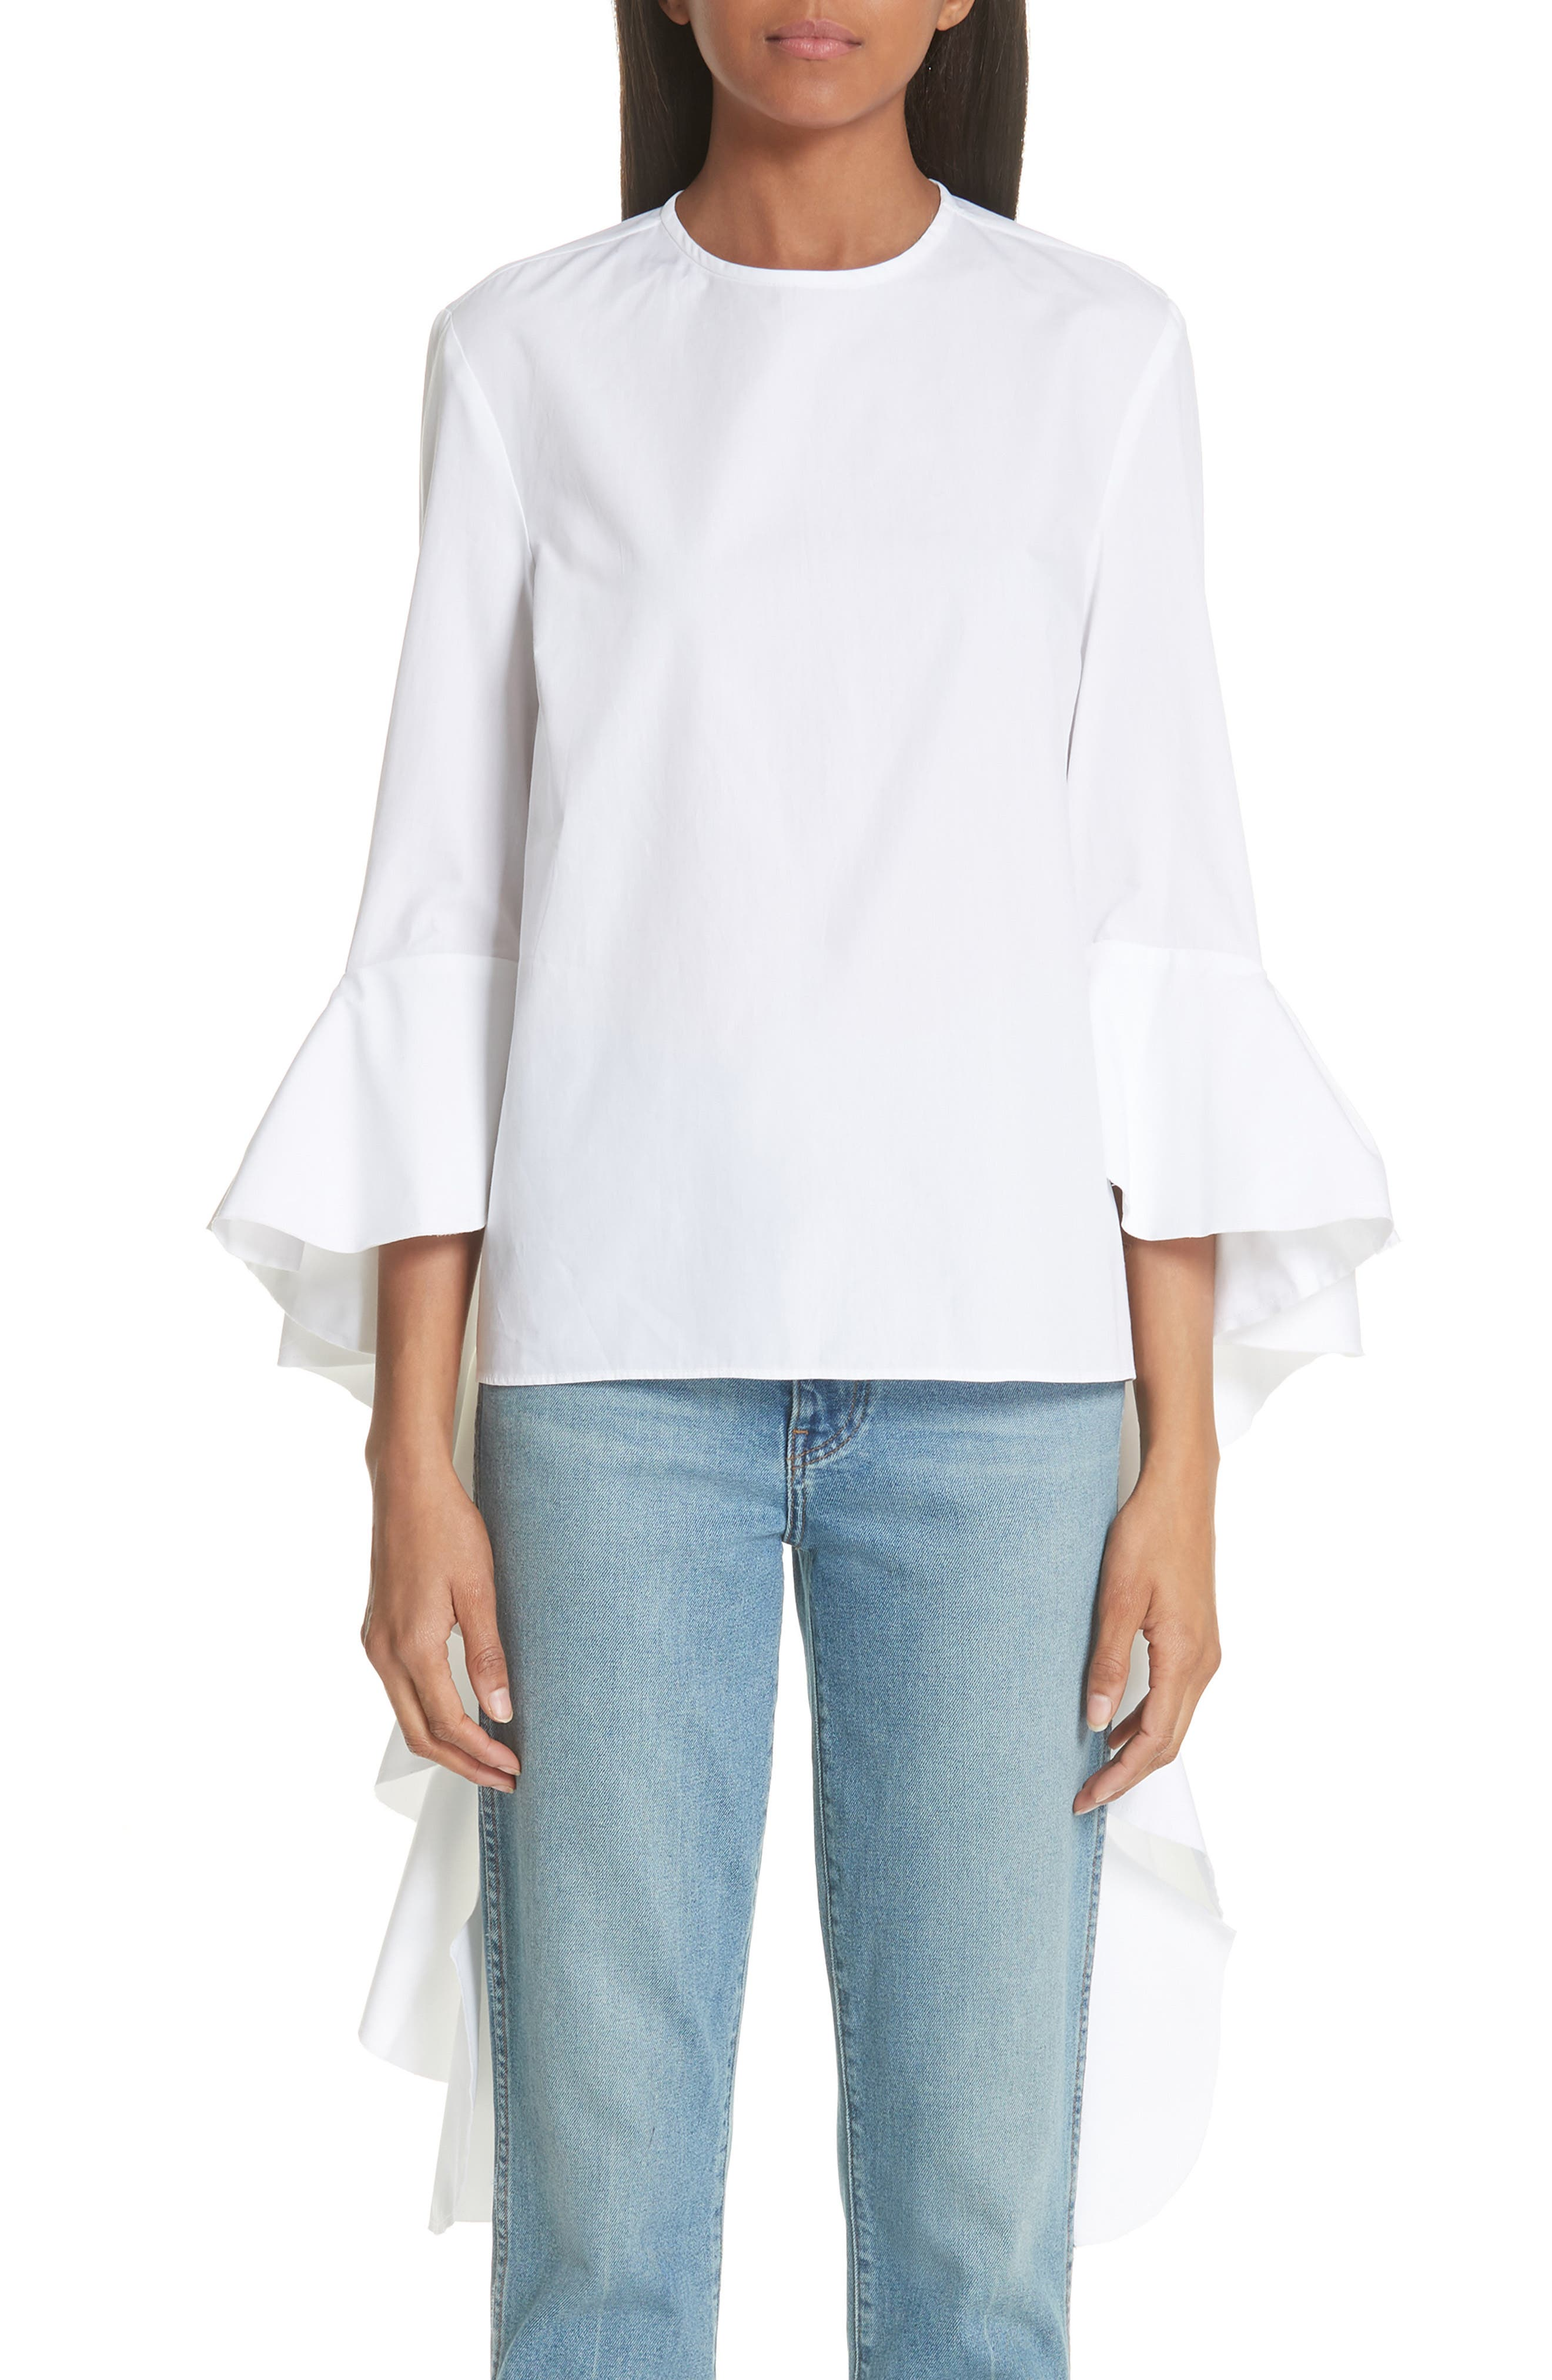 Emmeline Frill Sleeve Top,                         Main,                         color, White